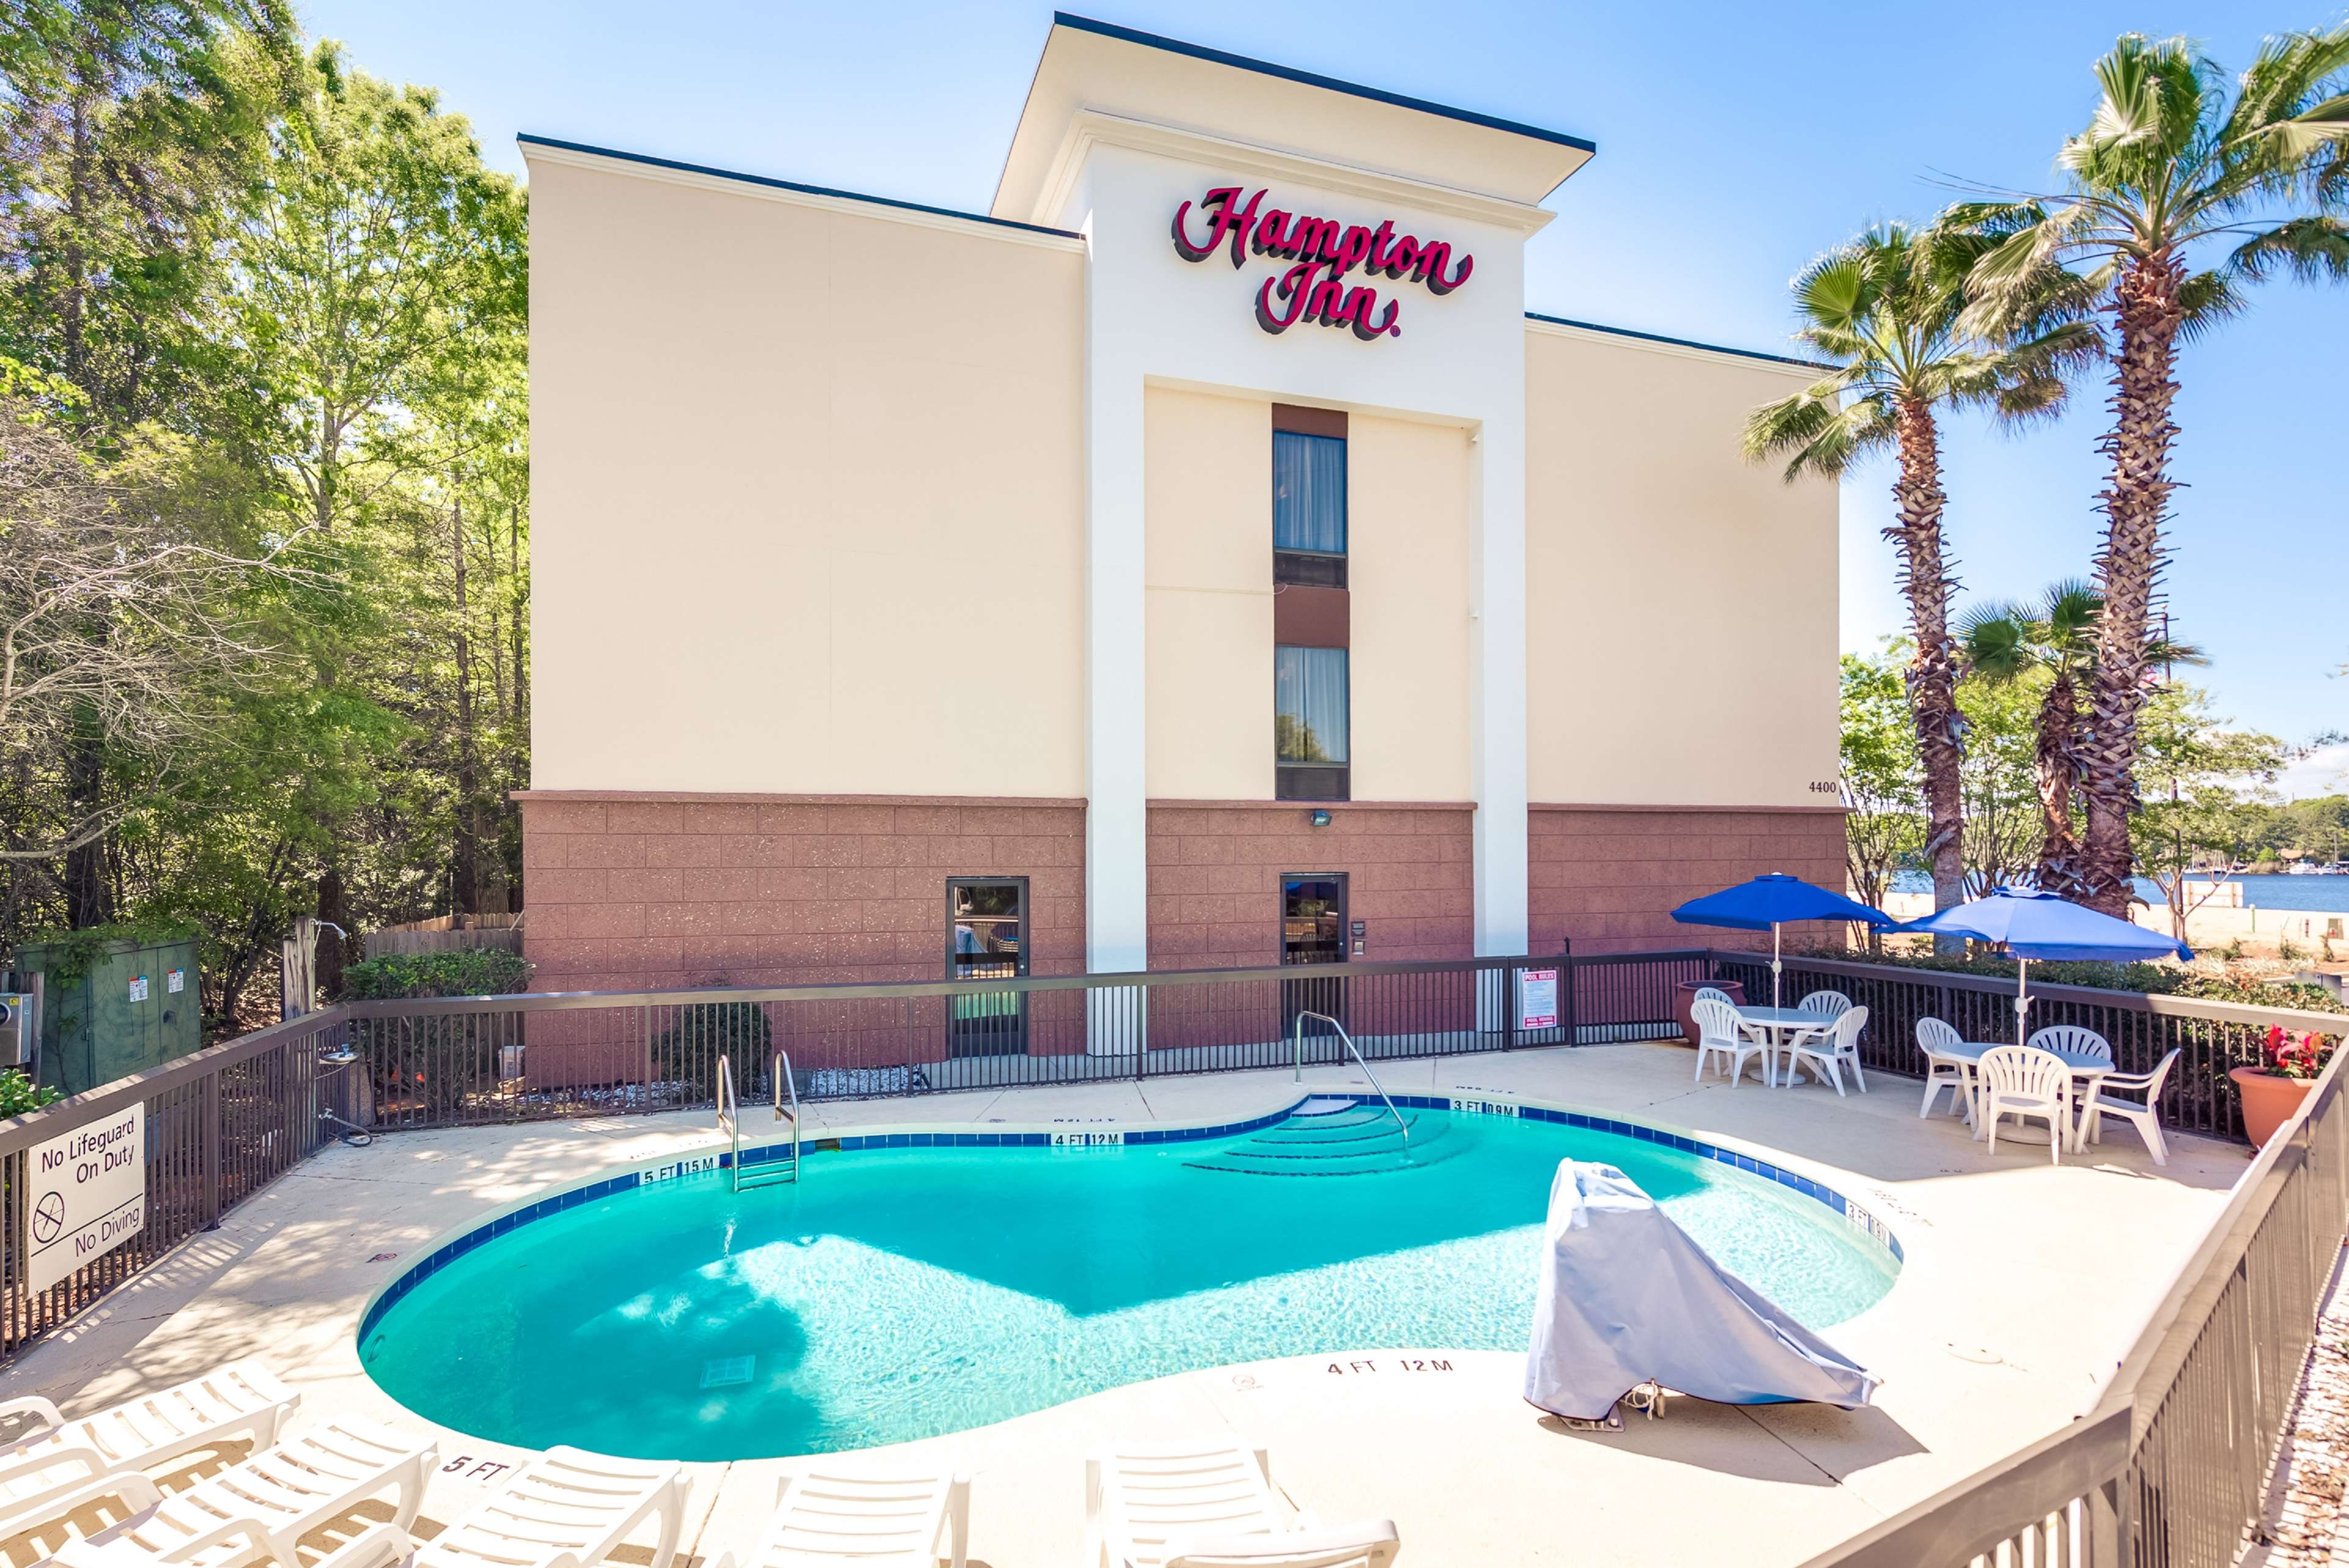 Hampton Inn Niceville-Eglin Air Force Base image 6